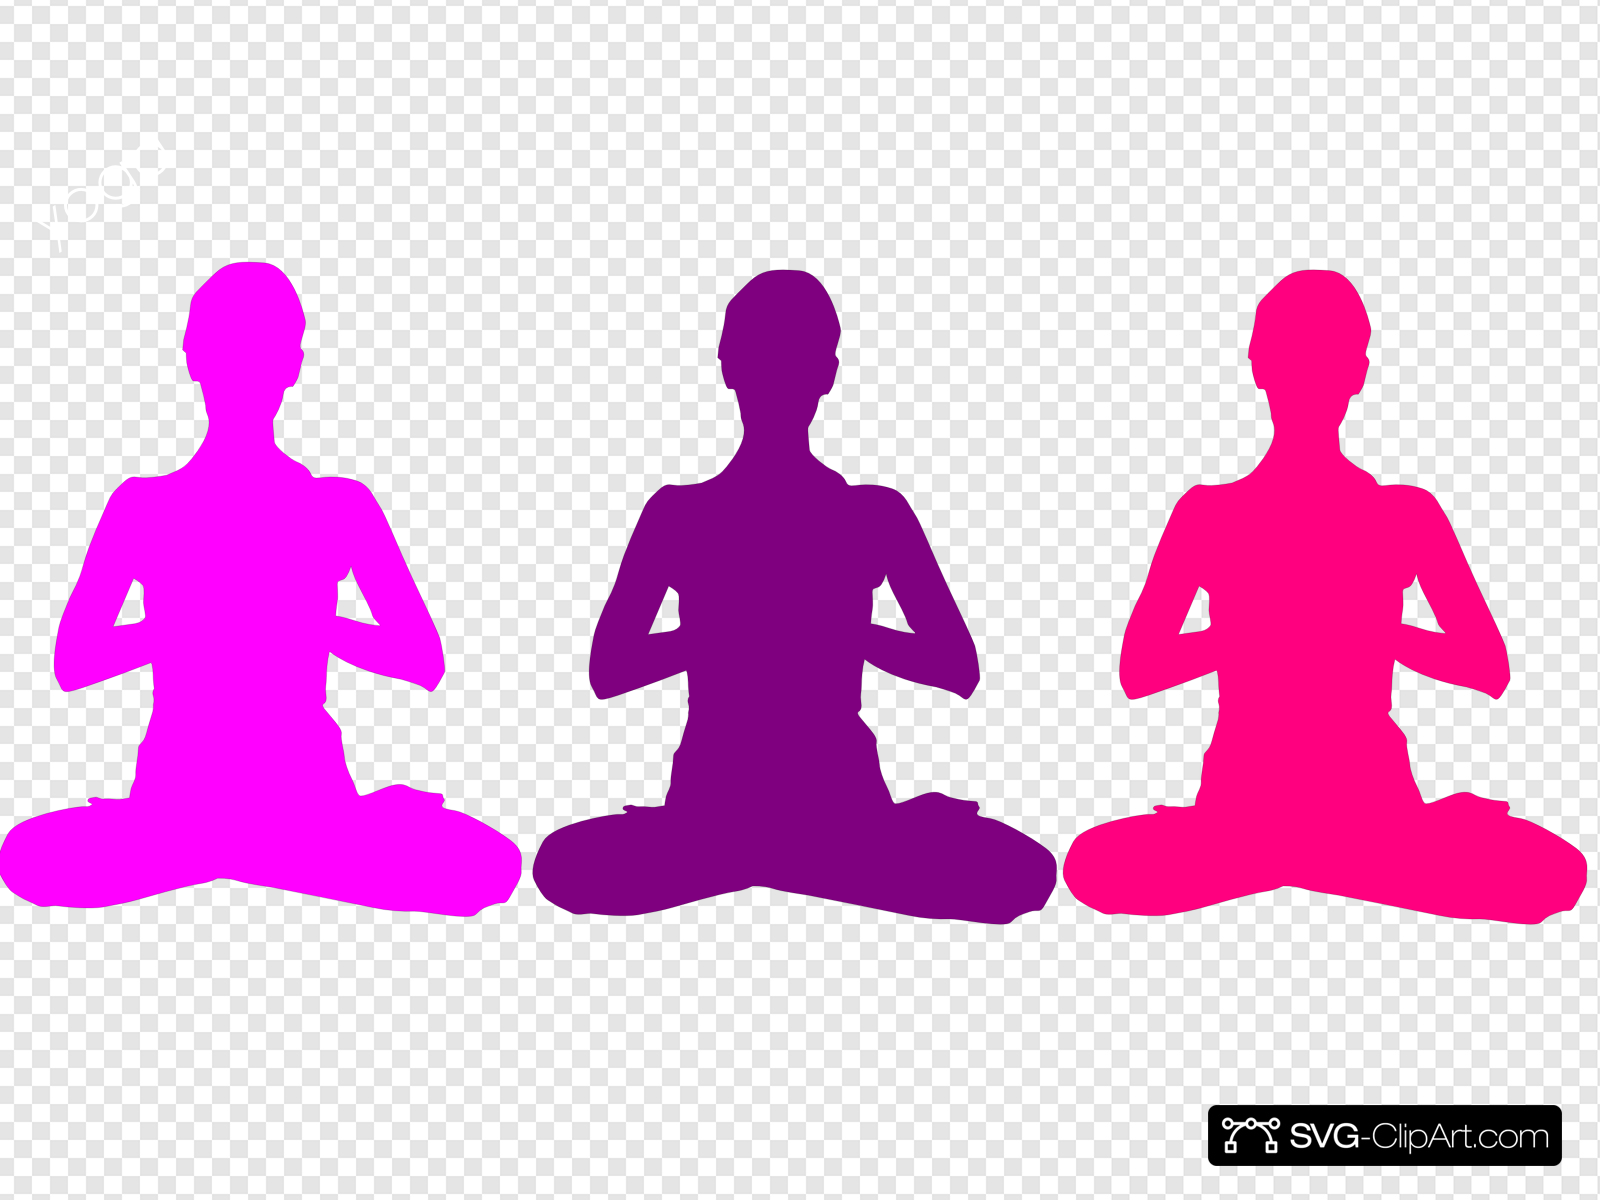 Meditation Position Clip art, Icon and SVG.